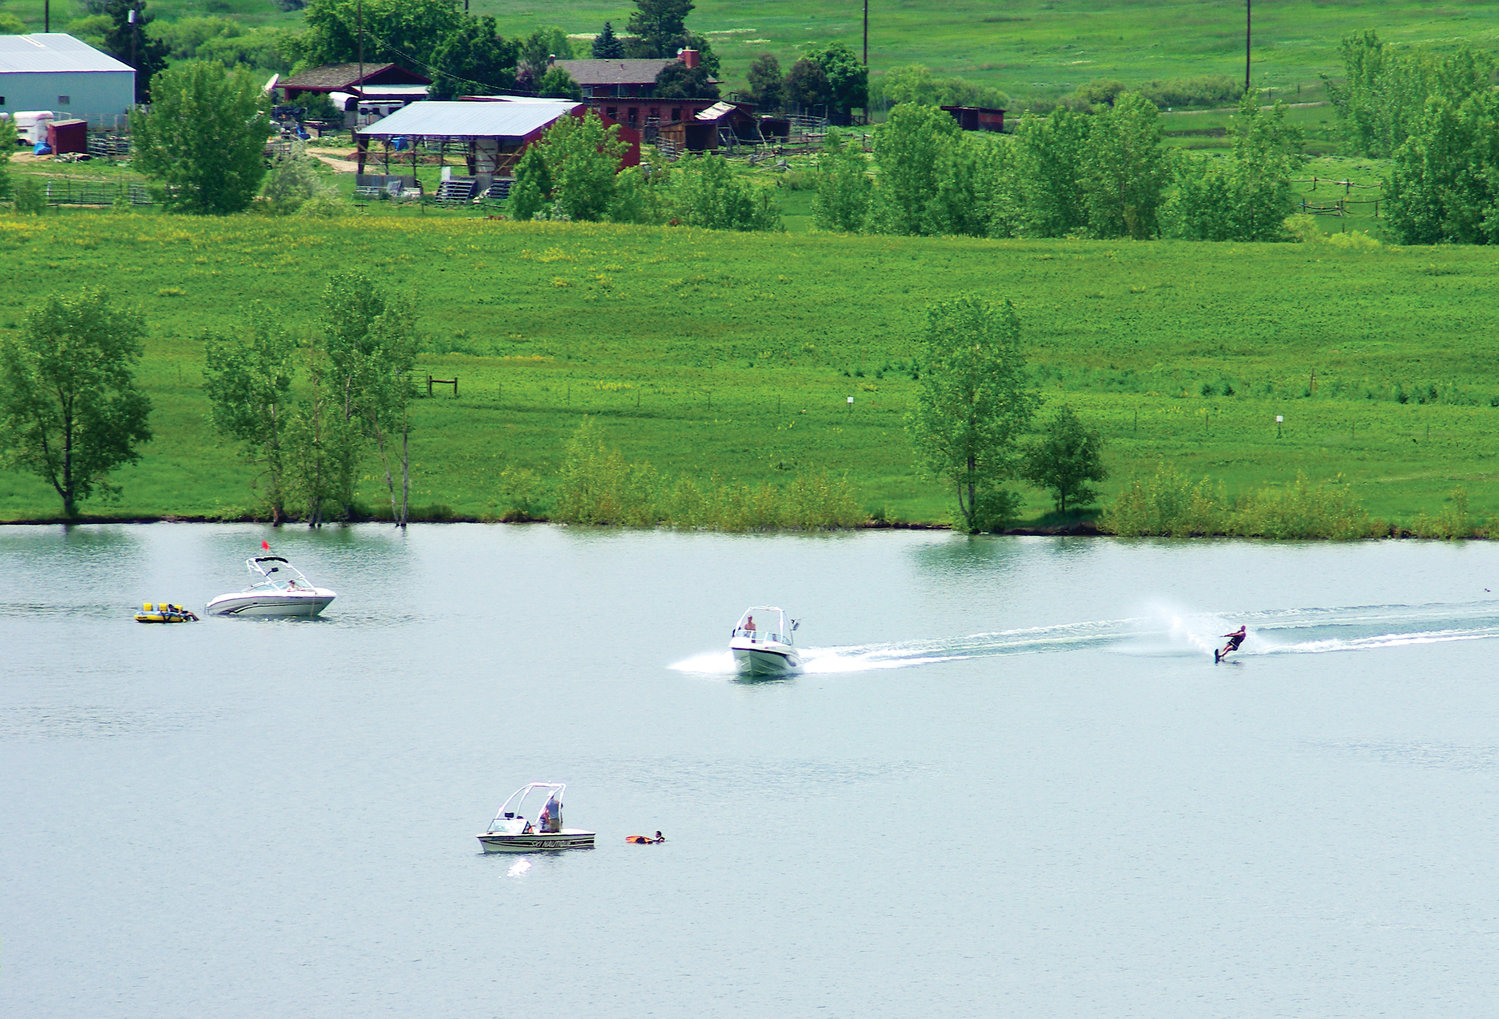 Standley Lake won't be a home to motor boats and water skiers this summer. City officials have banned any water craft that needs to be put into the water with a trailer for 2019 for fears of contamination.